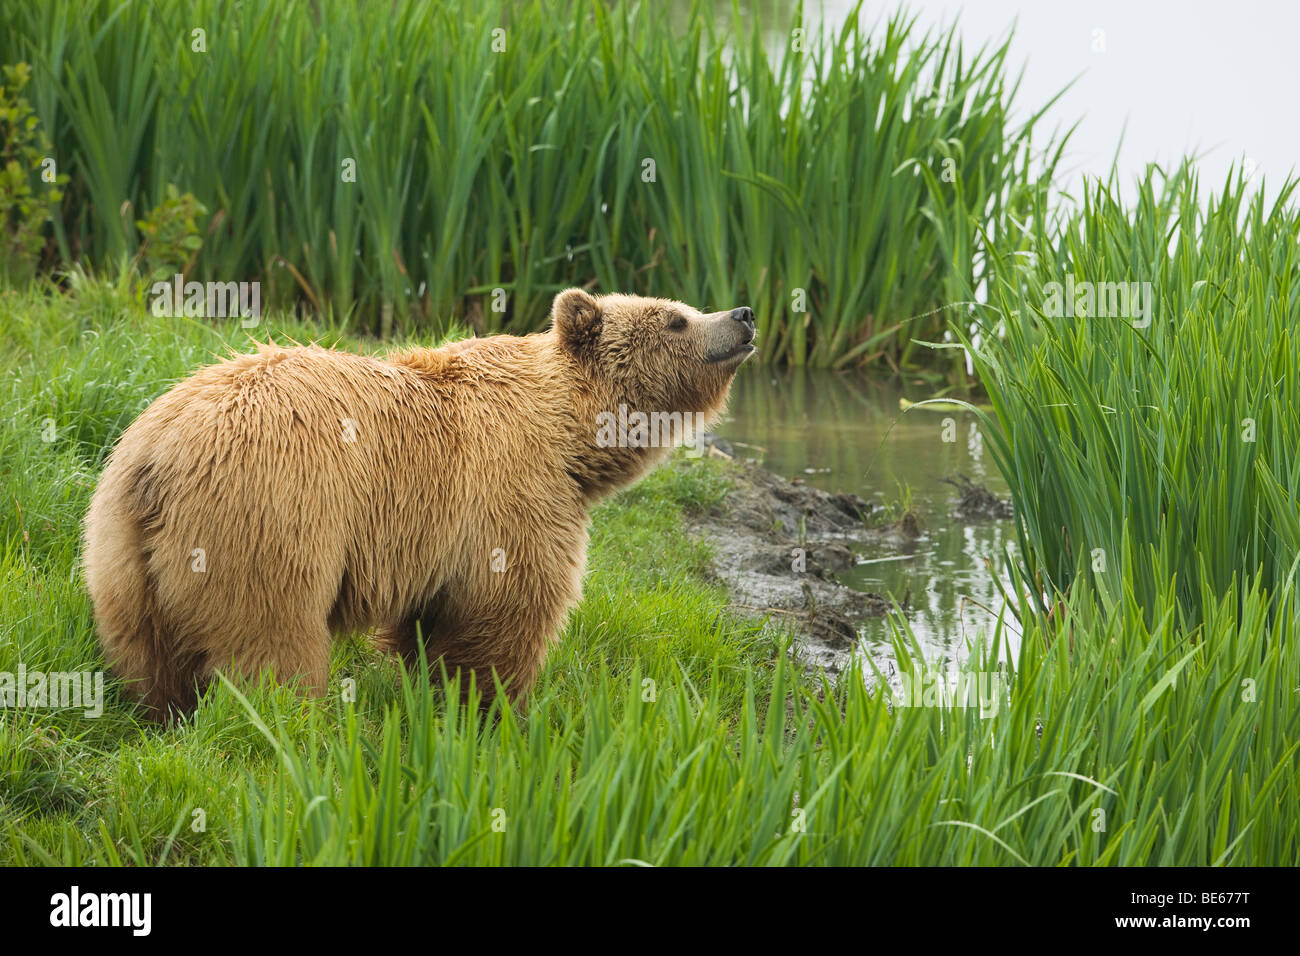 European Brown Bear (Ursus arctos) standing at the waters edge while sniffing the air. - Stock Image